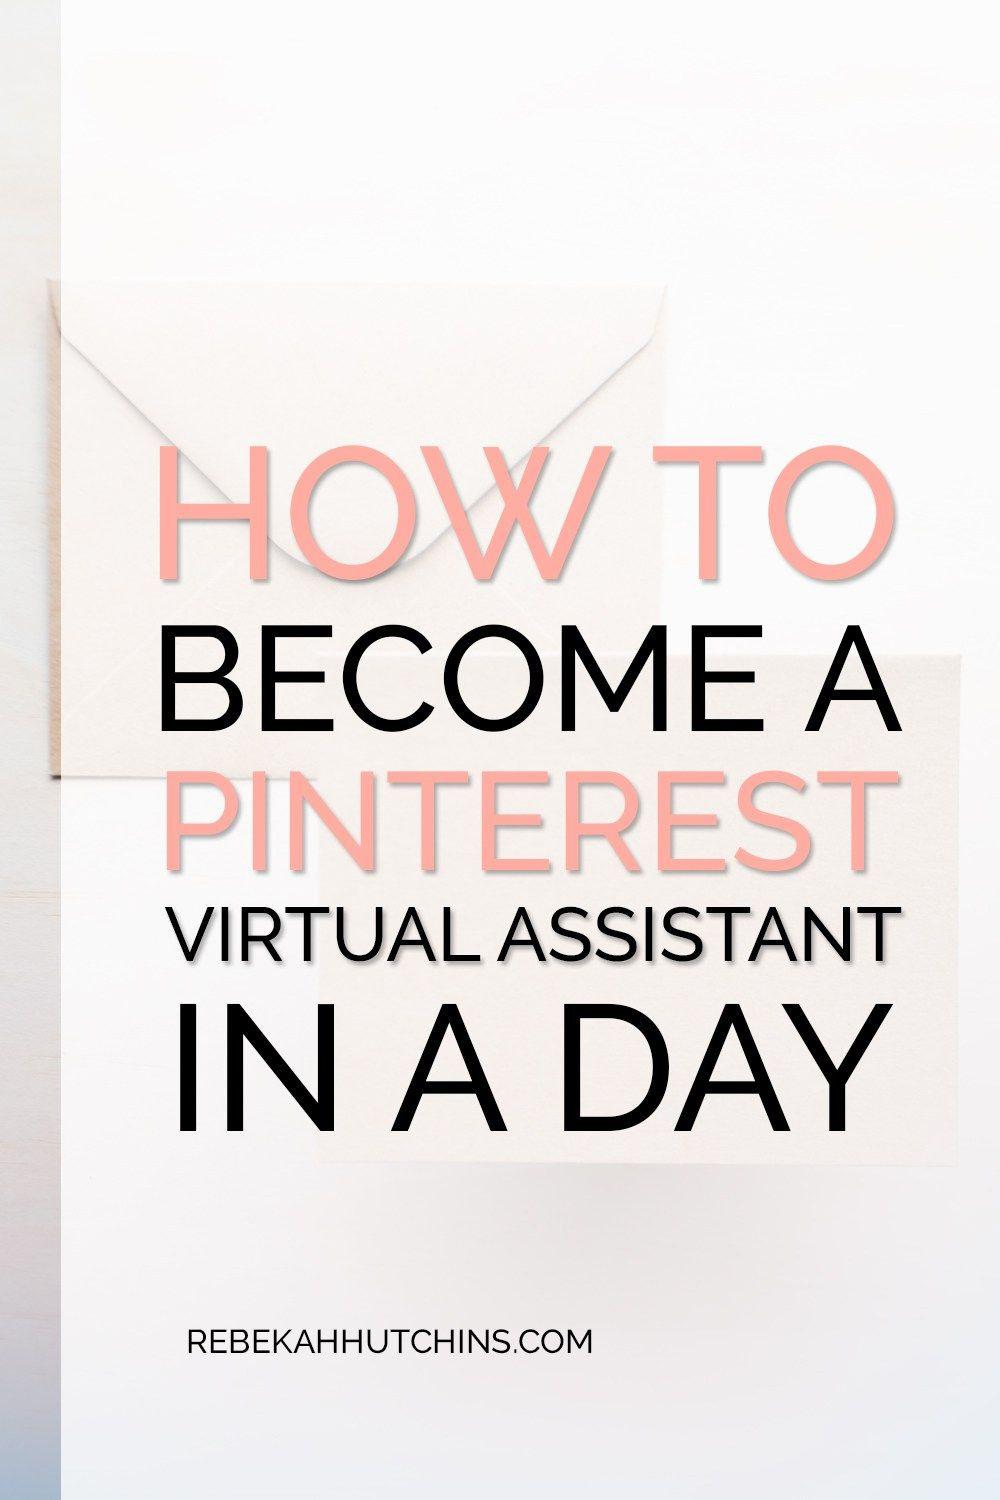 Become a Pinterest virtual assistant and start your online business in less than a day! From the kinds of services you can offer to tips and tools, this post will help you determine if becoming a Pinterest VA is right for you. Click through to start your Pinterest VA journey today!